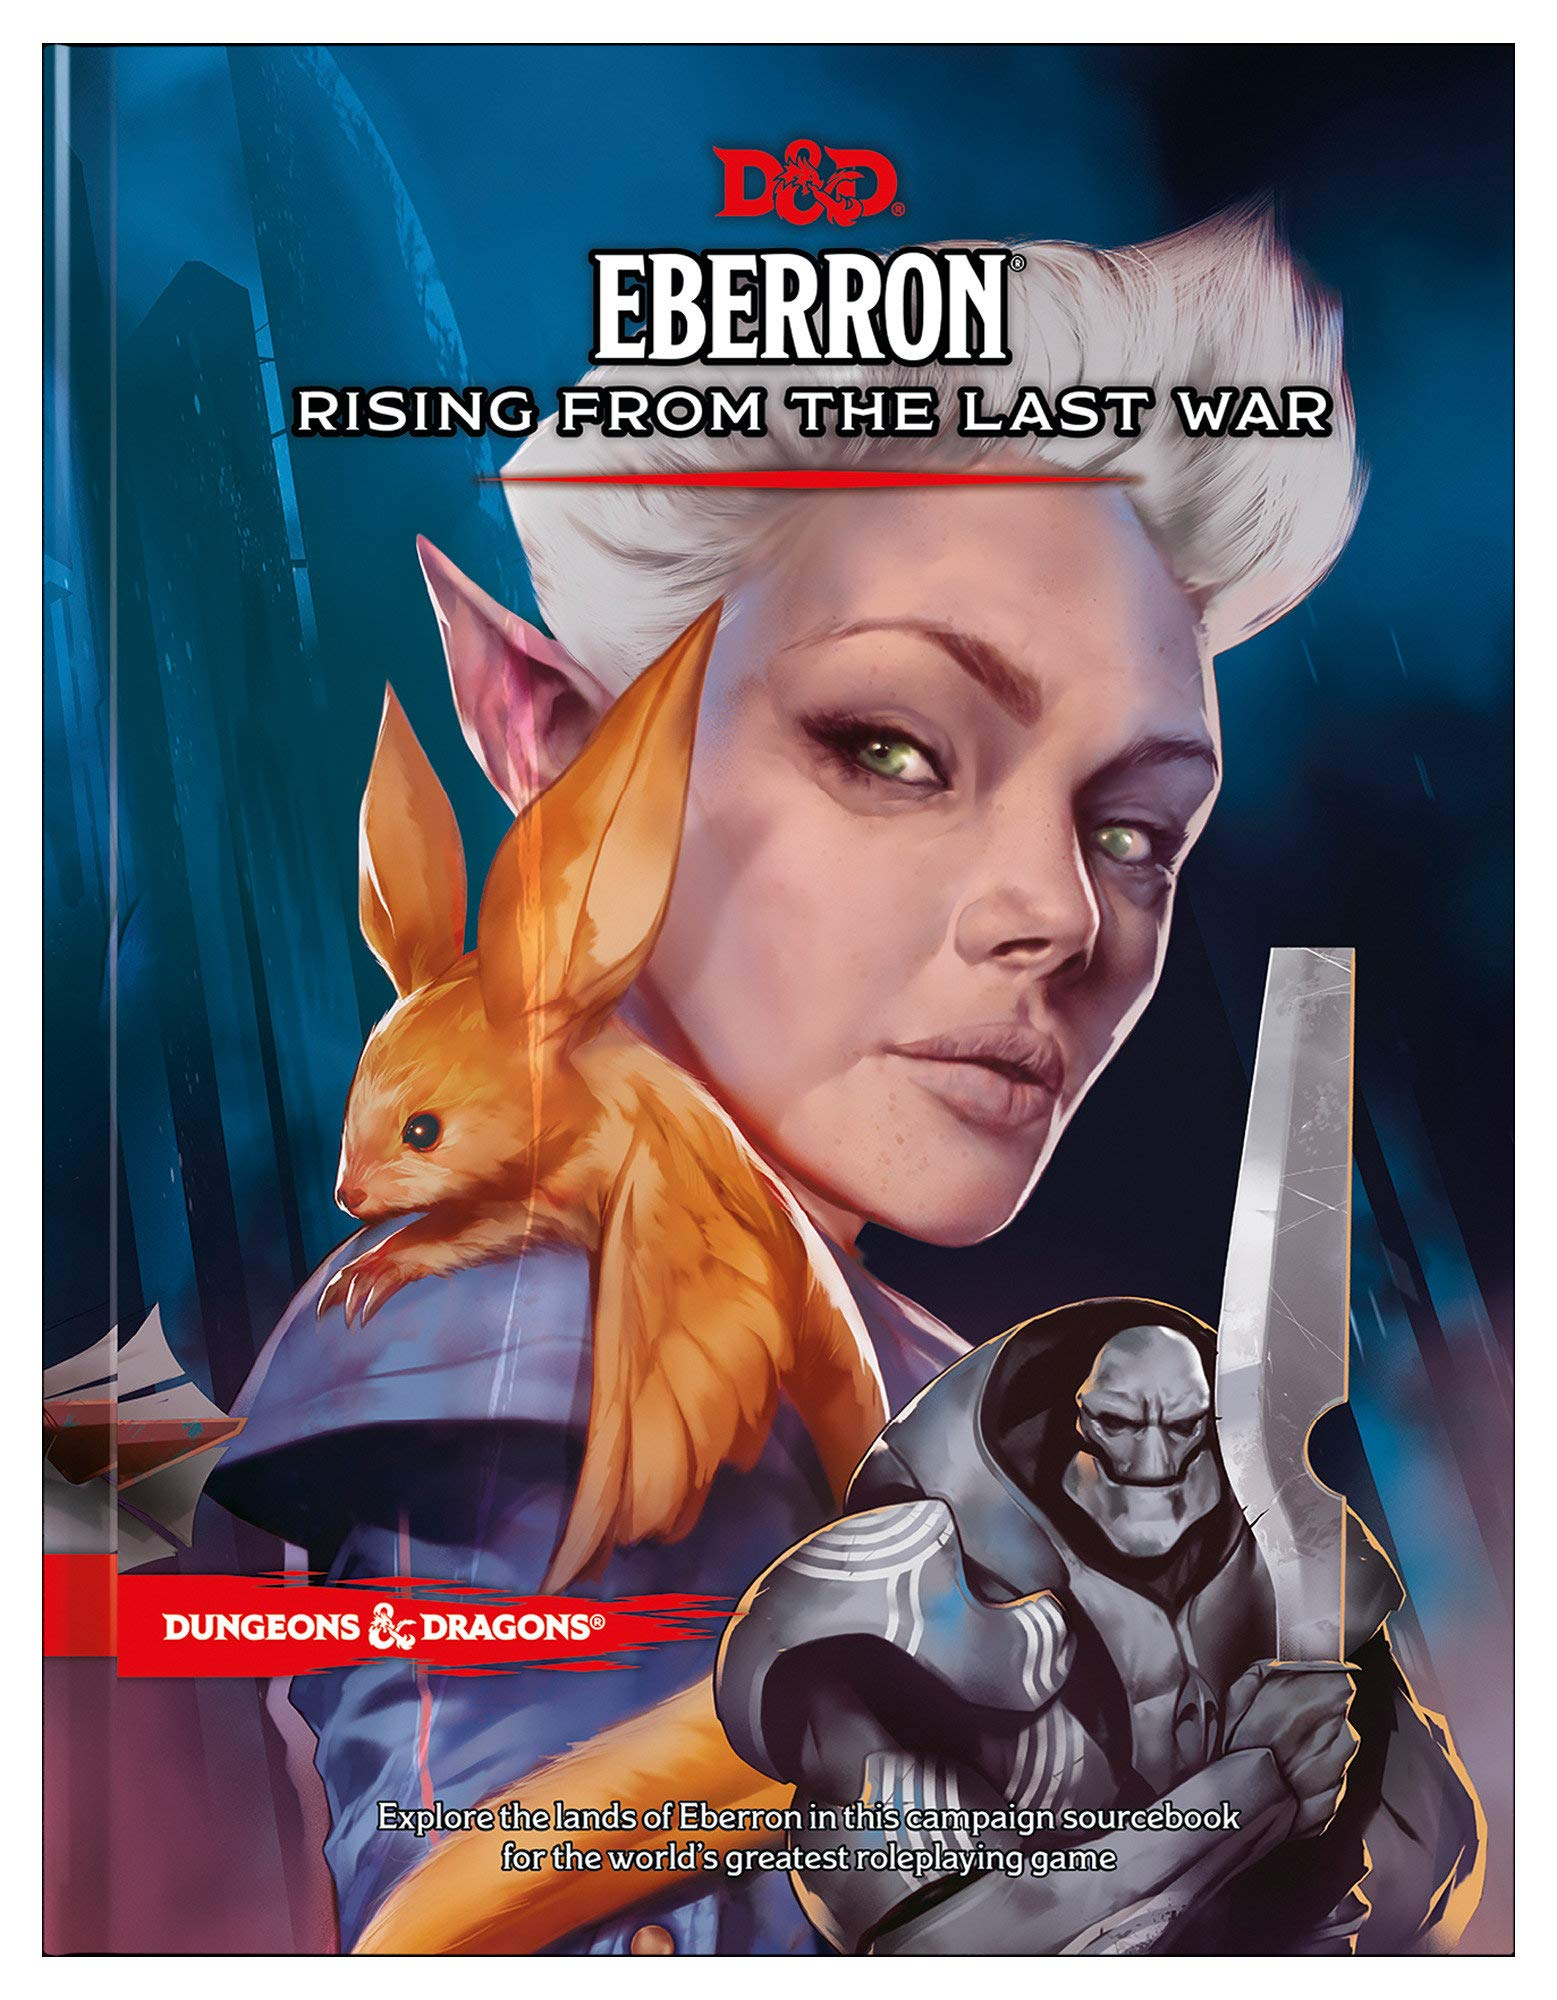 Eberron: Rising from the Last War revealed by Amazon early